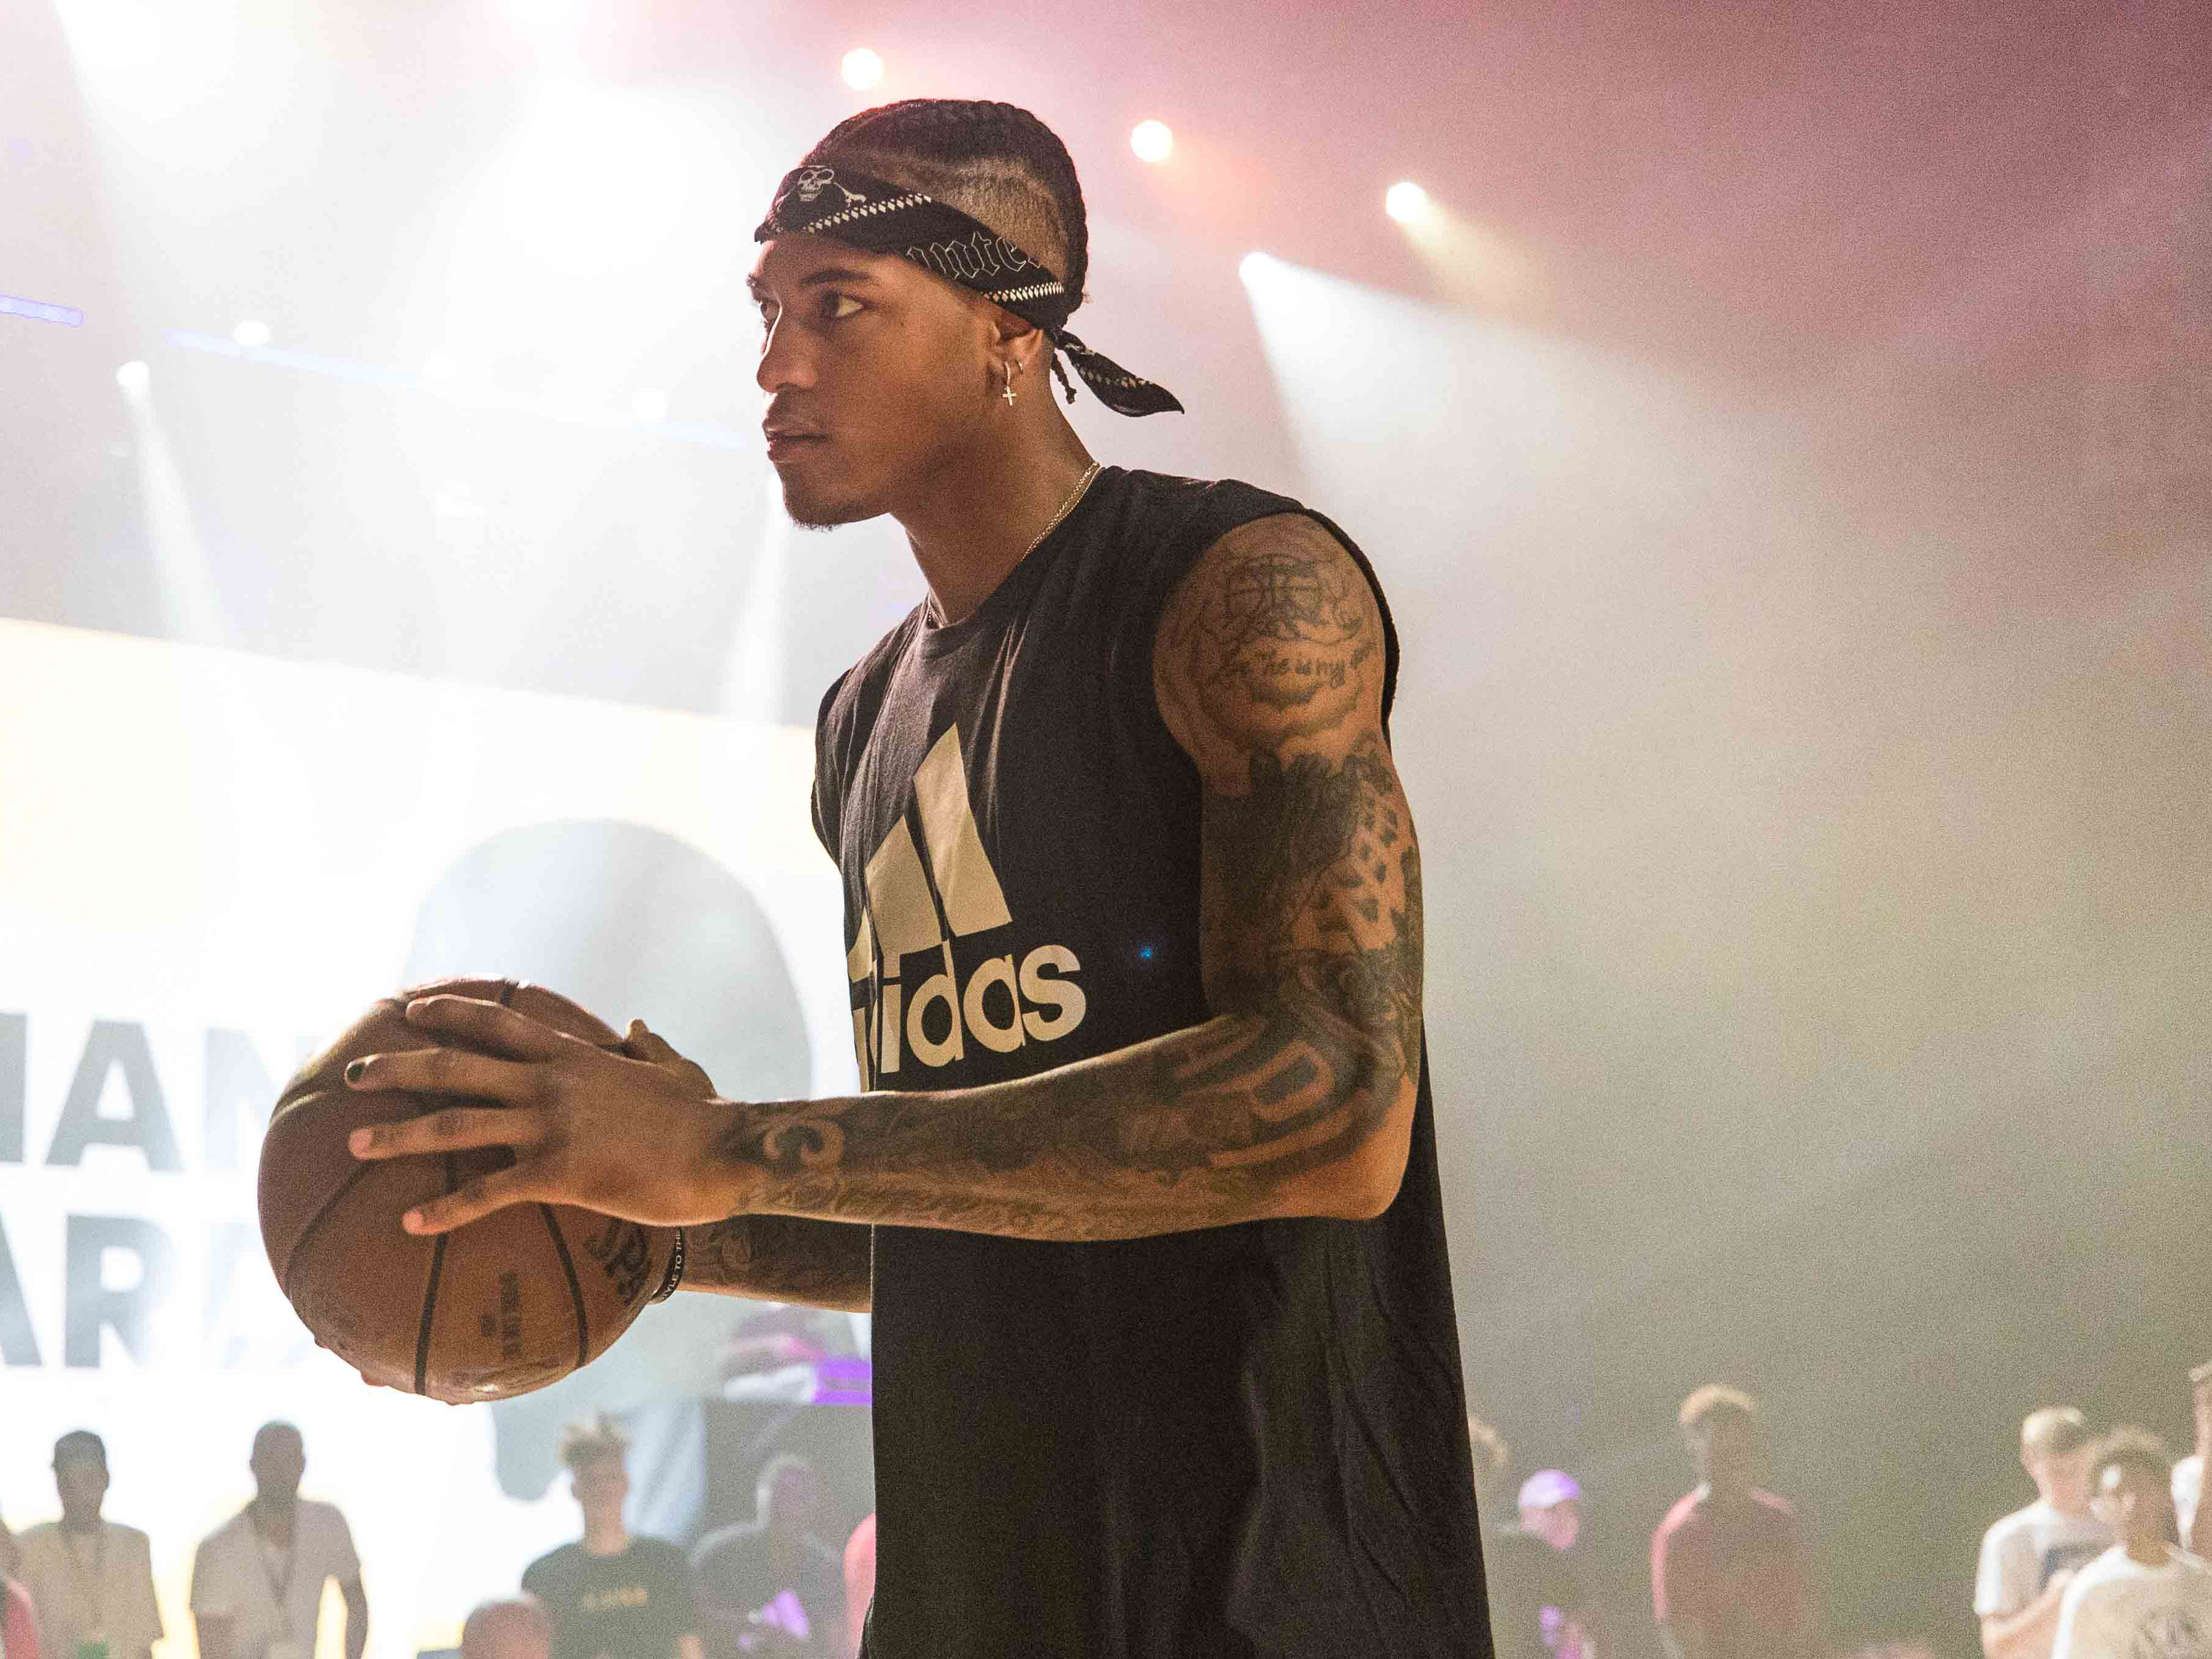 Clavijas Contable Se convierte en  Why Would adidas Move Towards Basketball After Letting the NBA Go? – ARCH- USA